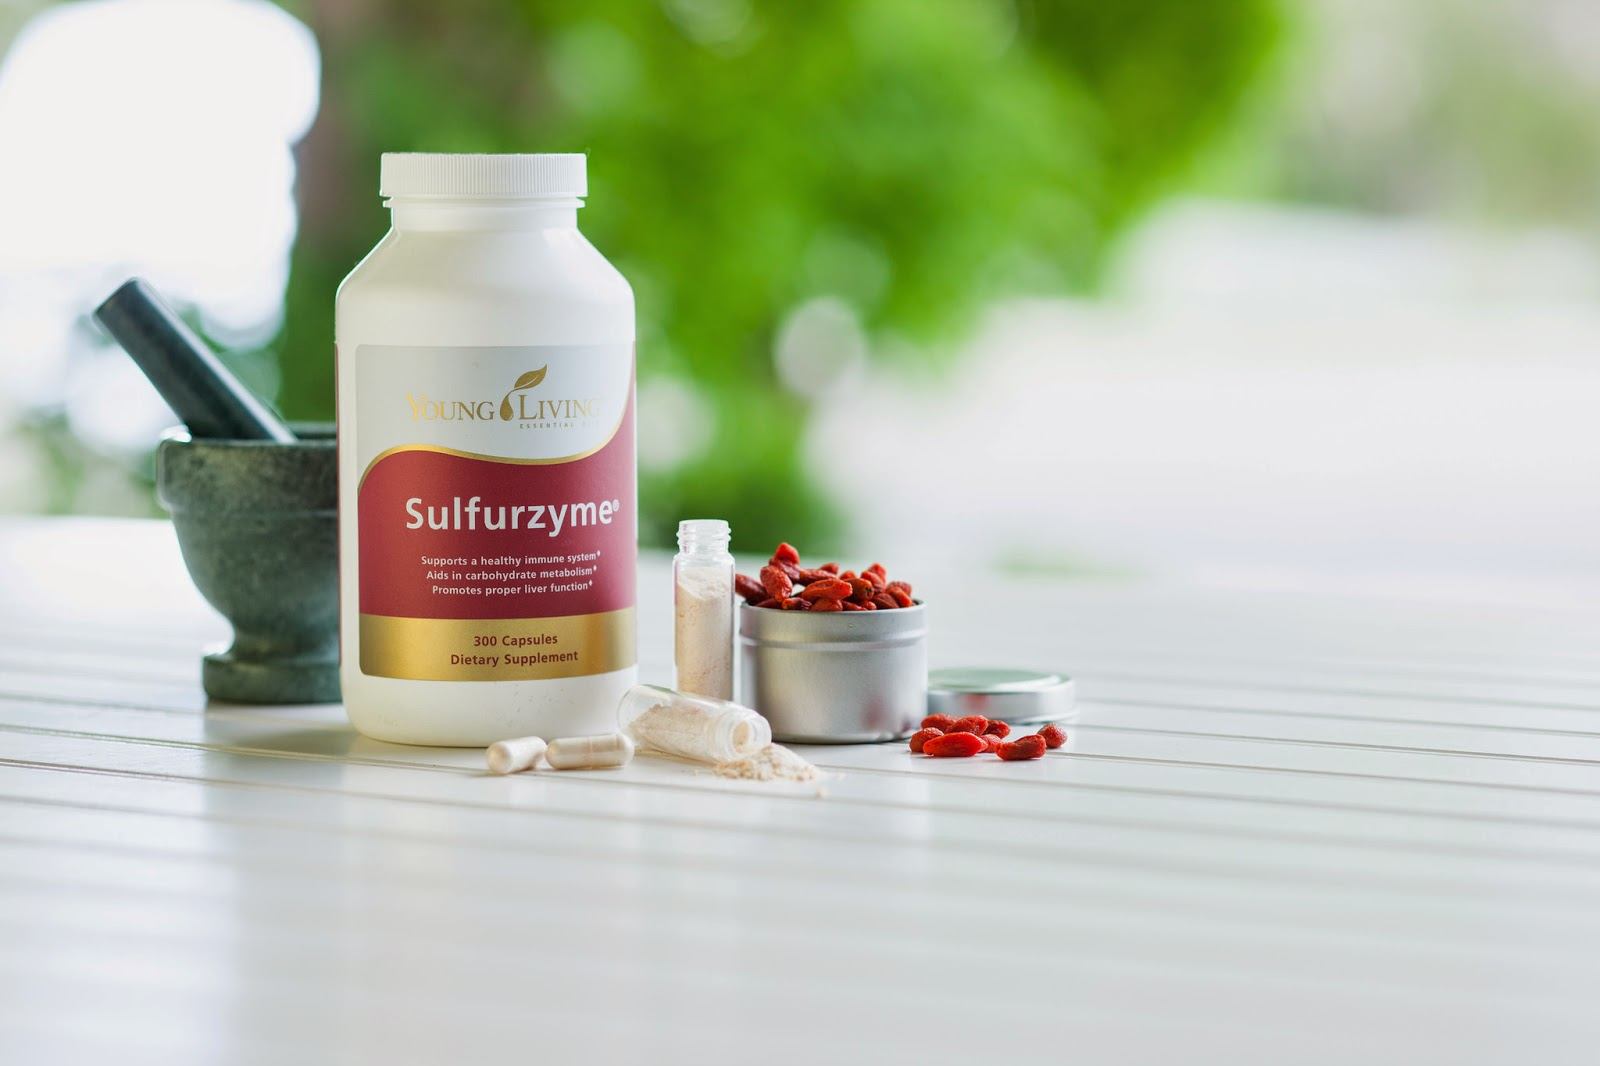 Sulfurzyme supports a healthy immune system, aids in carbohydrate metabolism and promotes proper liver function.